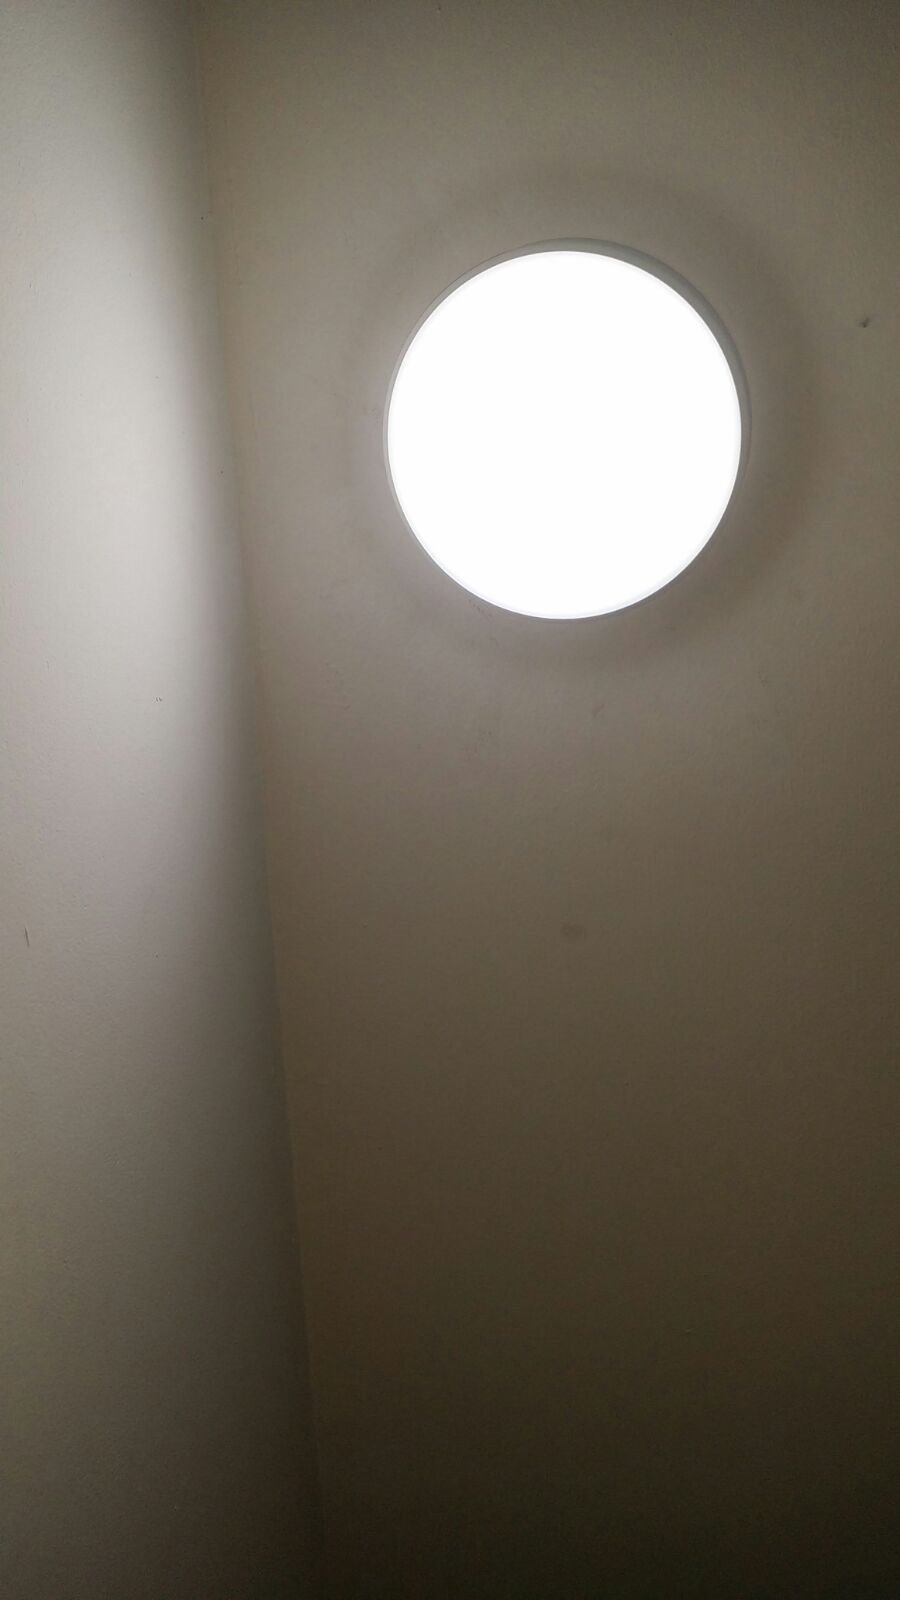 IMG-20171230-WA0026 - Wall light